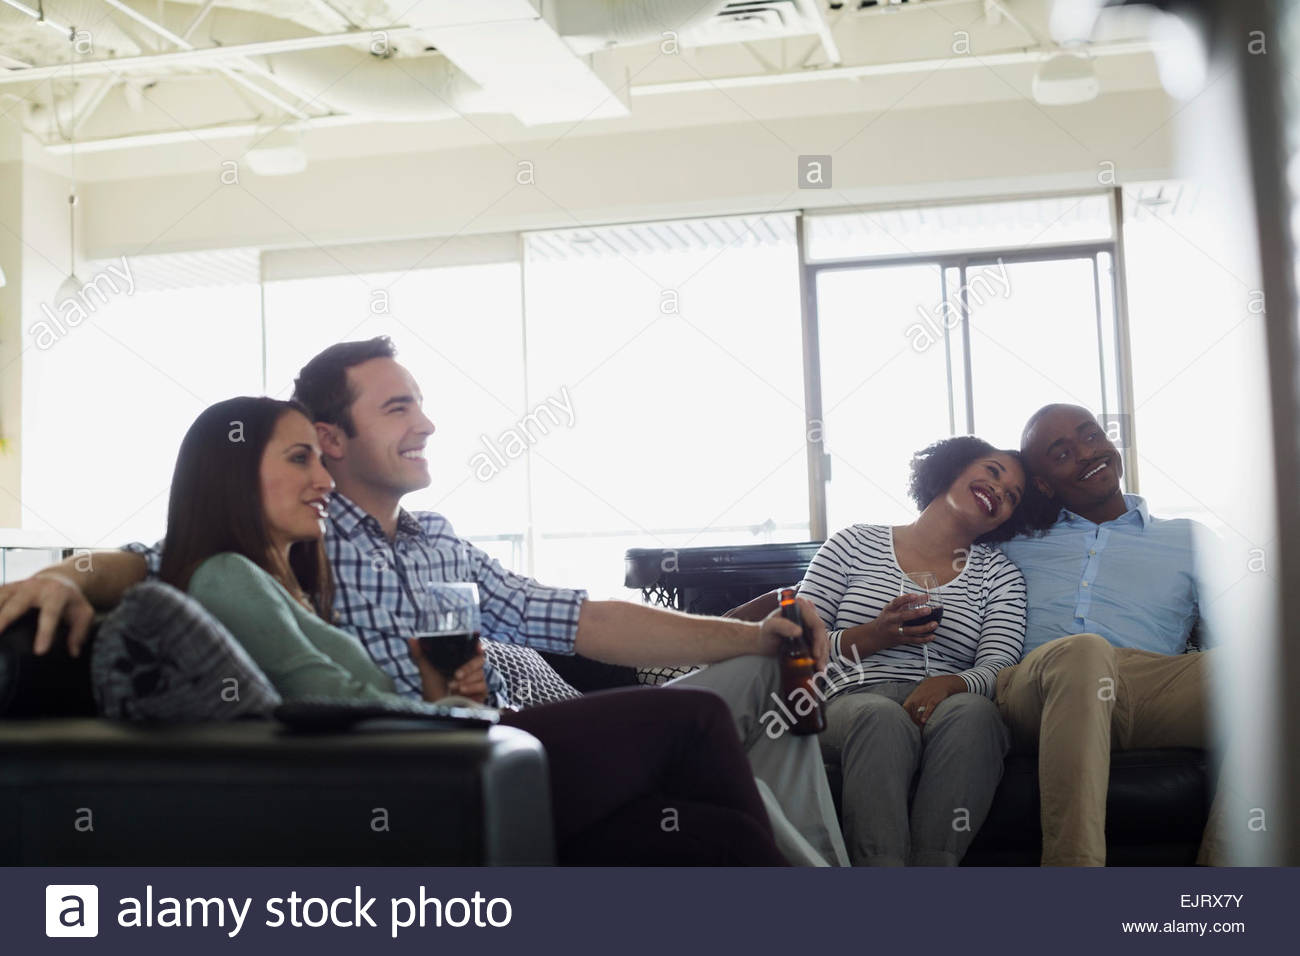 Couples drinking and watching TV on sofas - Stock Image